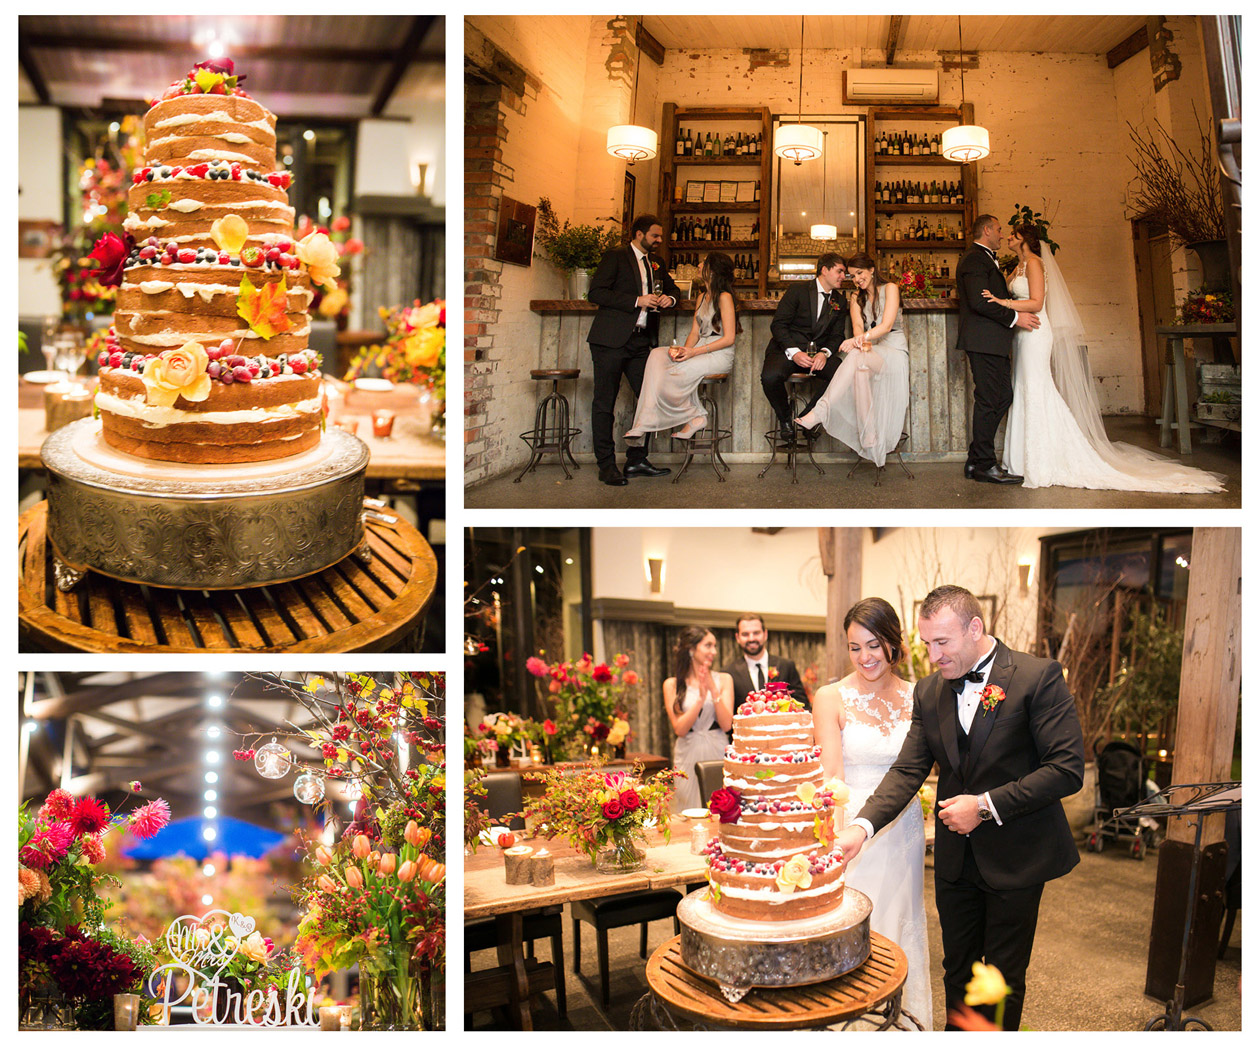 The beautiful Macedonian girl and her Macedonian groom cut their wedding cake representing happiness on the reception of the Stone of Yarra Vally and the surrounding is full of beautiful flowers